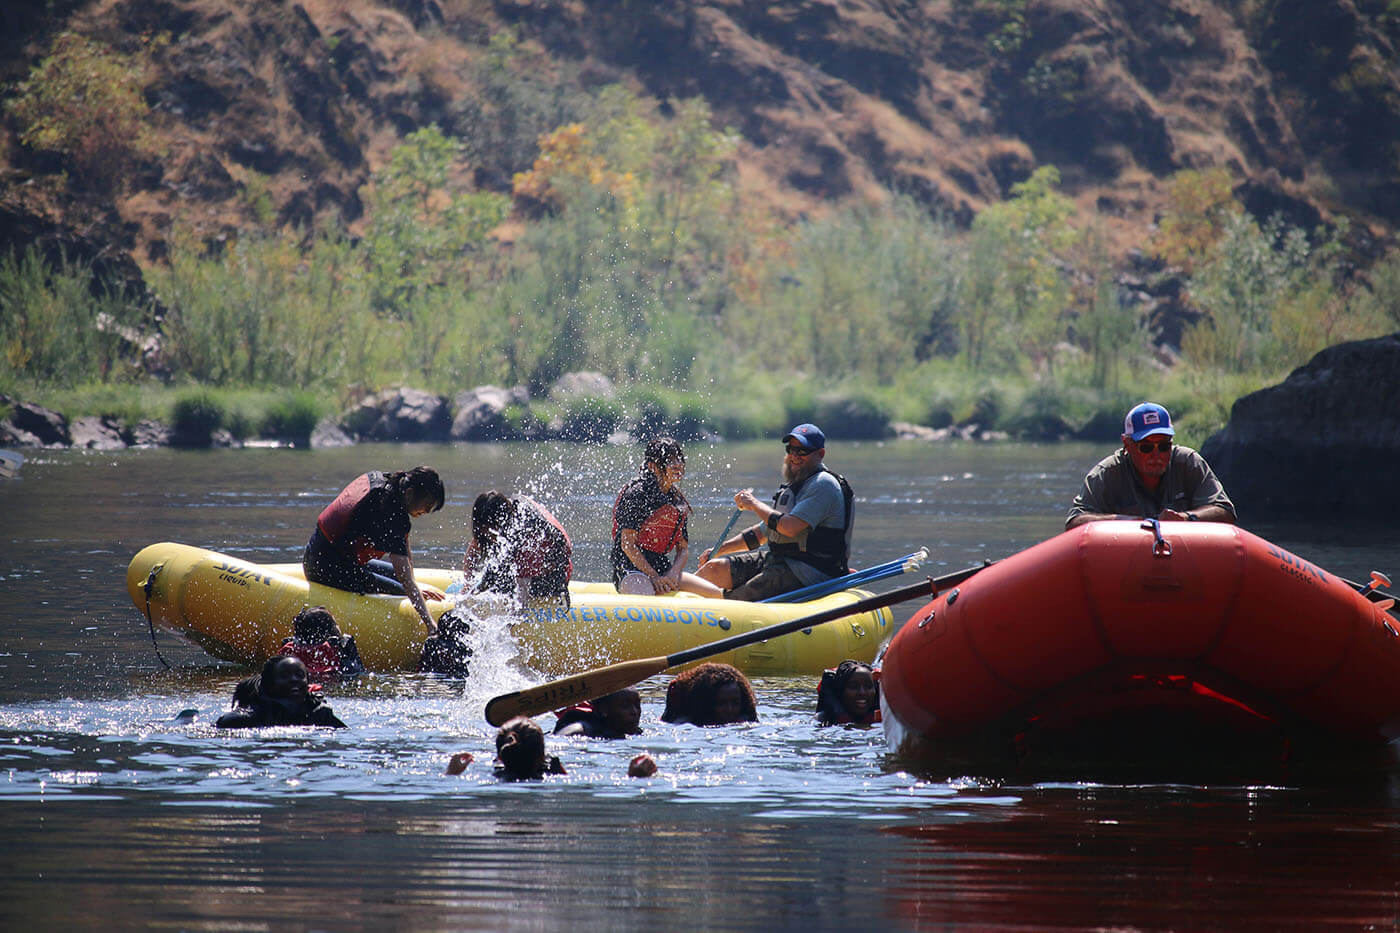 Boarding School's International Students go Swimming in the Rogue River